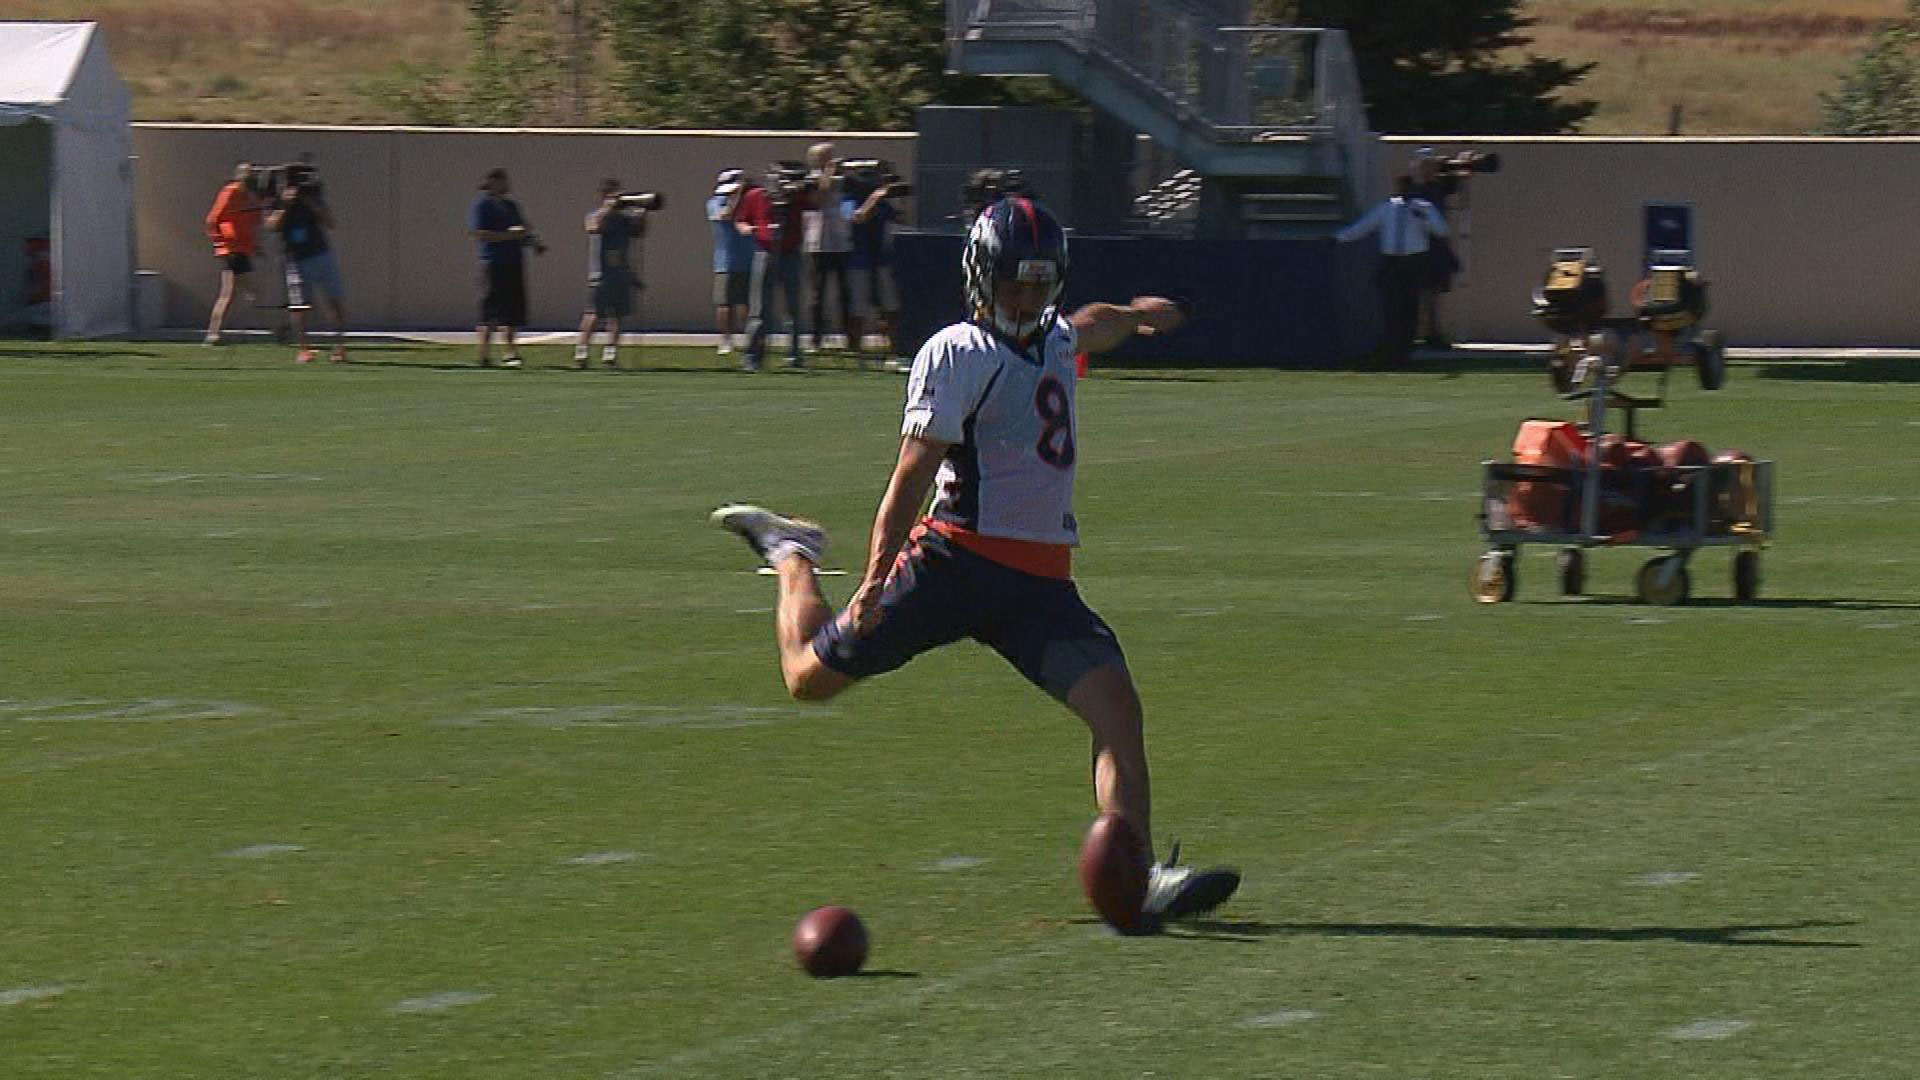 Broncos kickers Connor Barth and Brandon McManus (pictured) continue to battle for the place kicking job. Barth was signed by the Broncos mid season last year and handled placekicking duties. McManus was cut by the Broncos during training camp last season, but was re-signed late in the season to kick off (credit: David Wille)